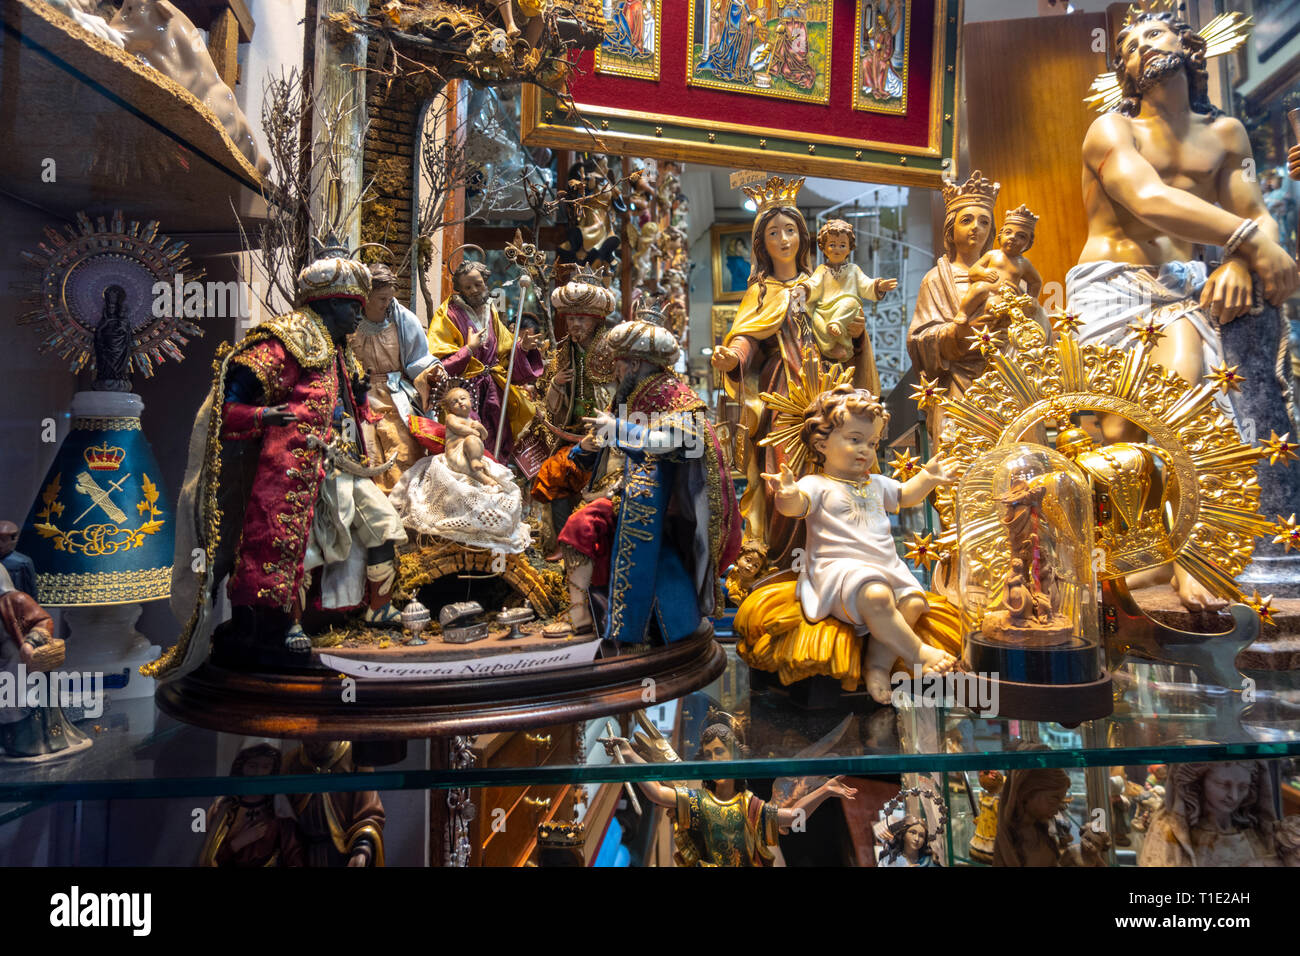 Boutique Madrid Articulos Religiosos El Angel. Articles religieux, magasin vitrine avec crèches ; l'enfant Jésus et catholique de figurines. Photo Stock